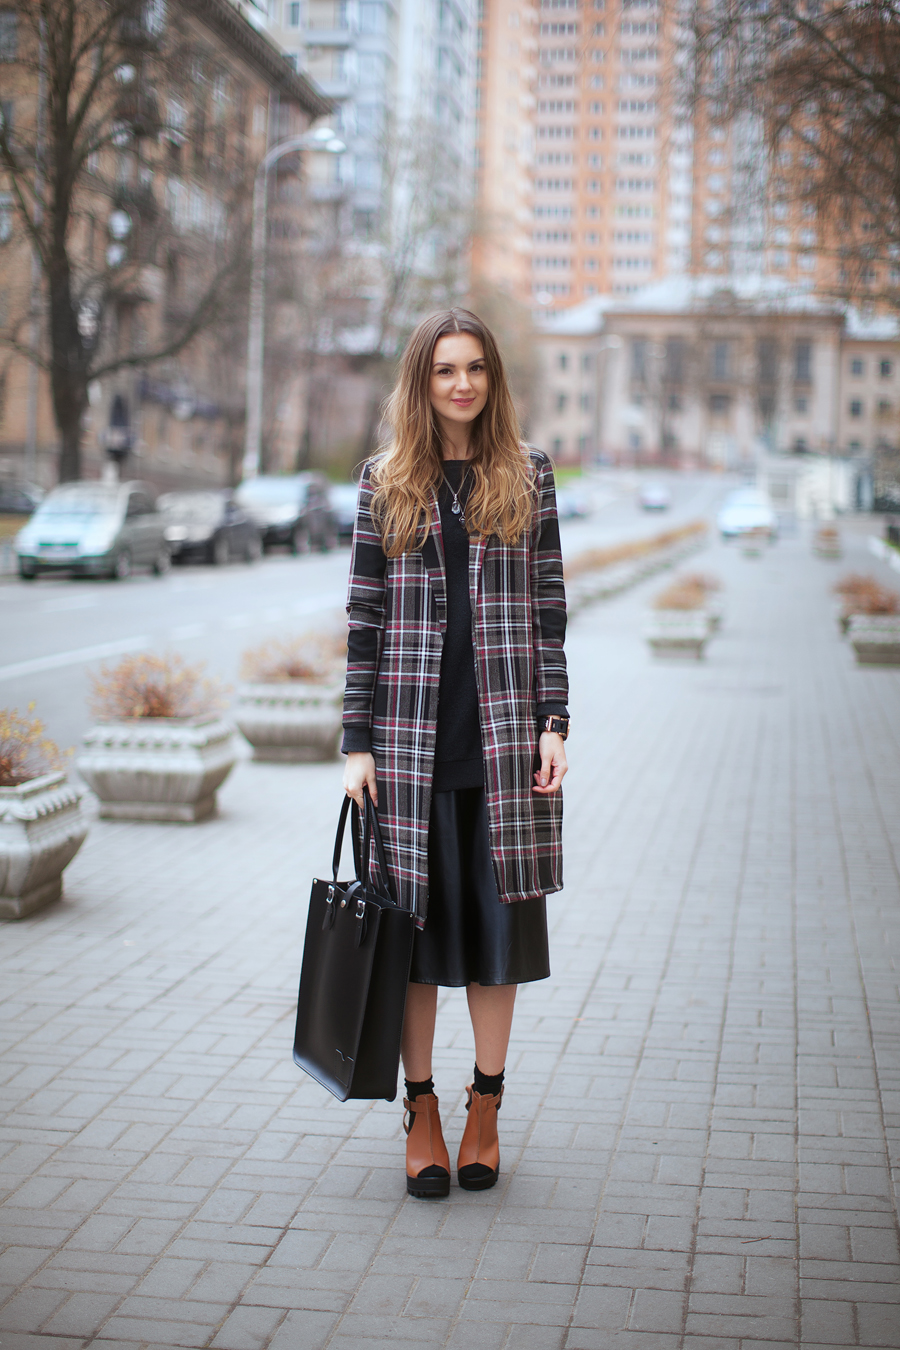 street-style-plaid-coat-midi-skirt-outfit